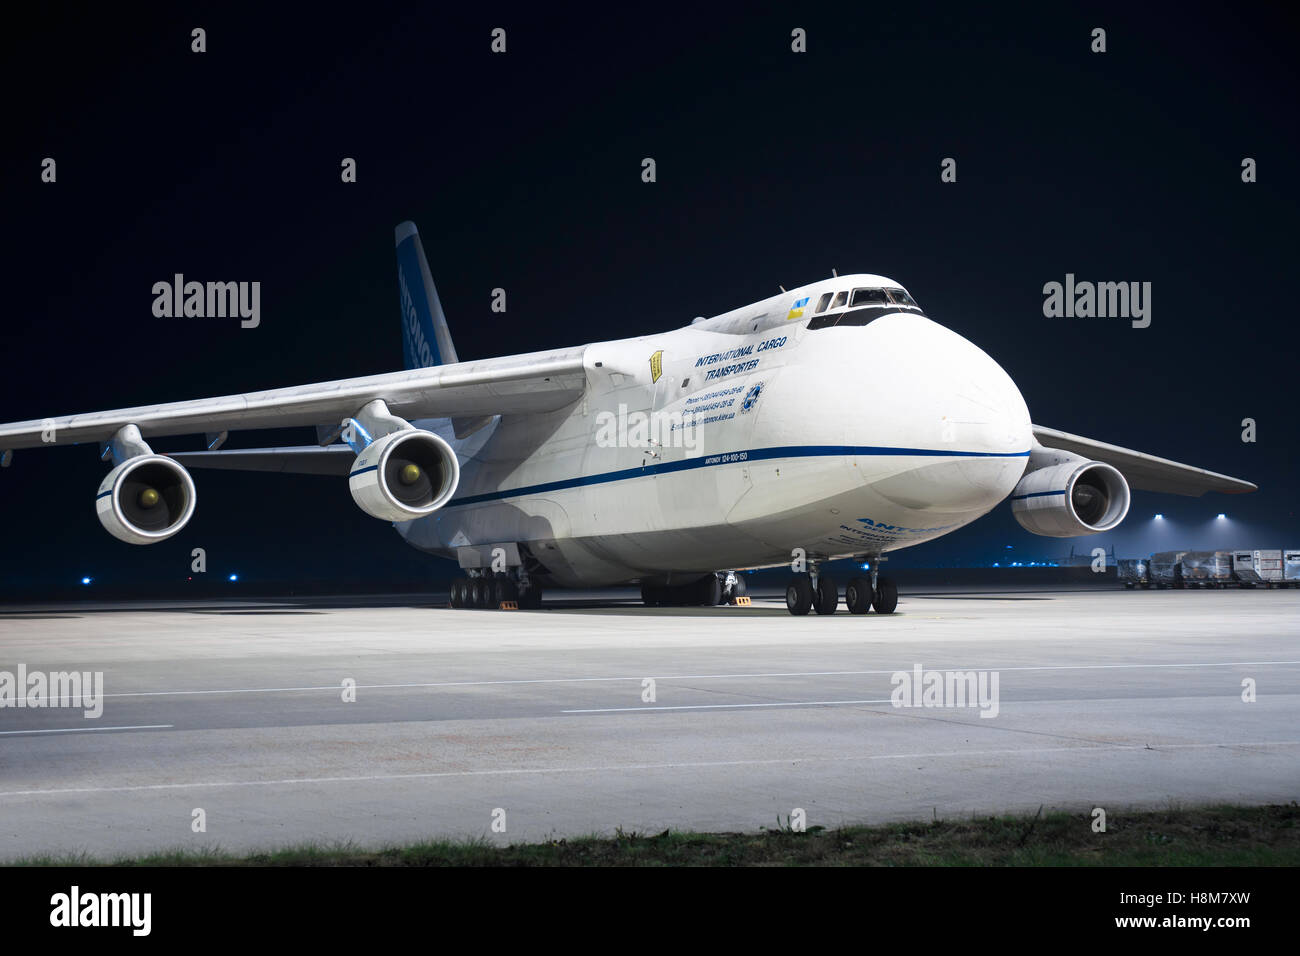 Leipzig/Germany November 12, 2016: Antonov An124 Antonov Design Bureau the biggest aircraft in the world taking - Stock Image